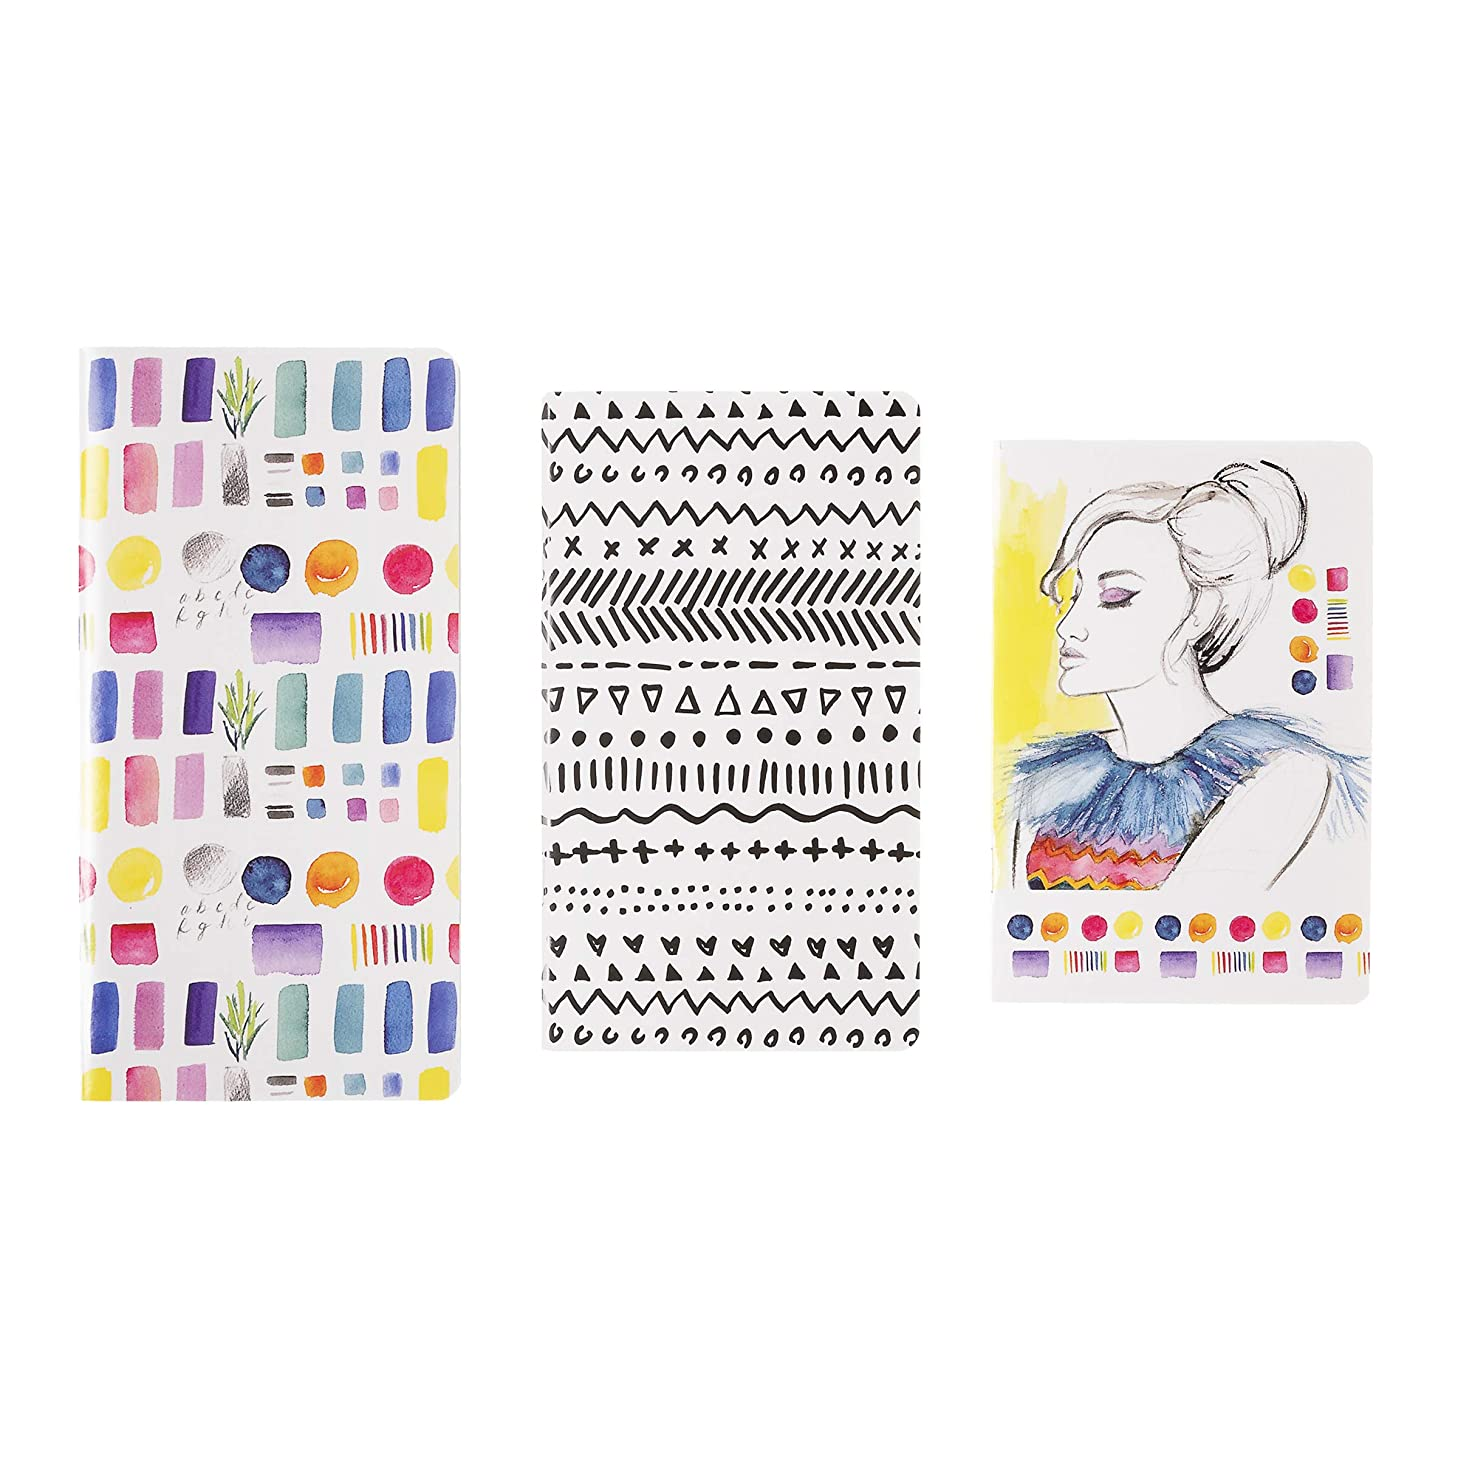 Darice 30076556 Notebook Set: Softcover, Woman and Prints Design, 3pc, Multicolor